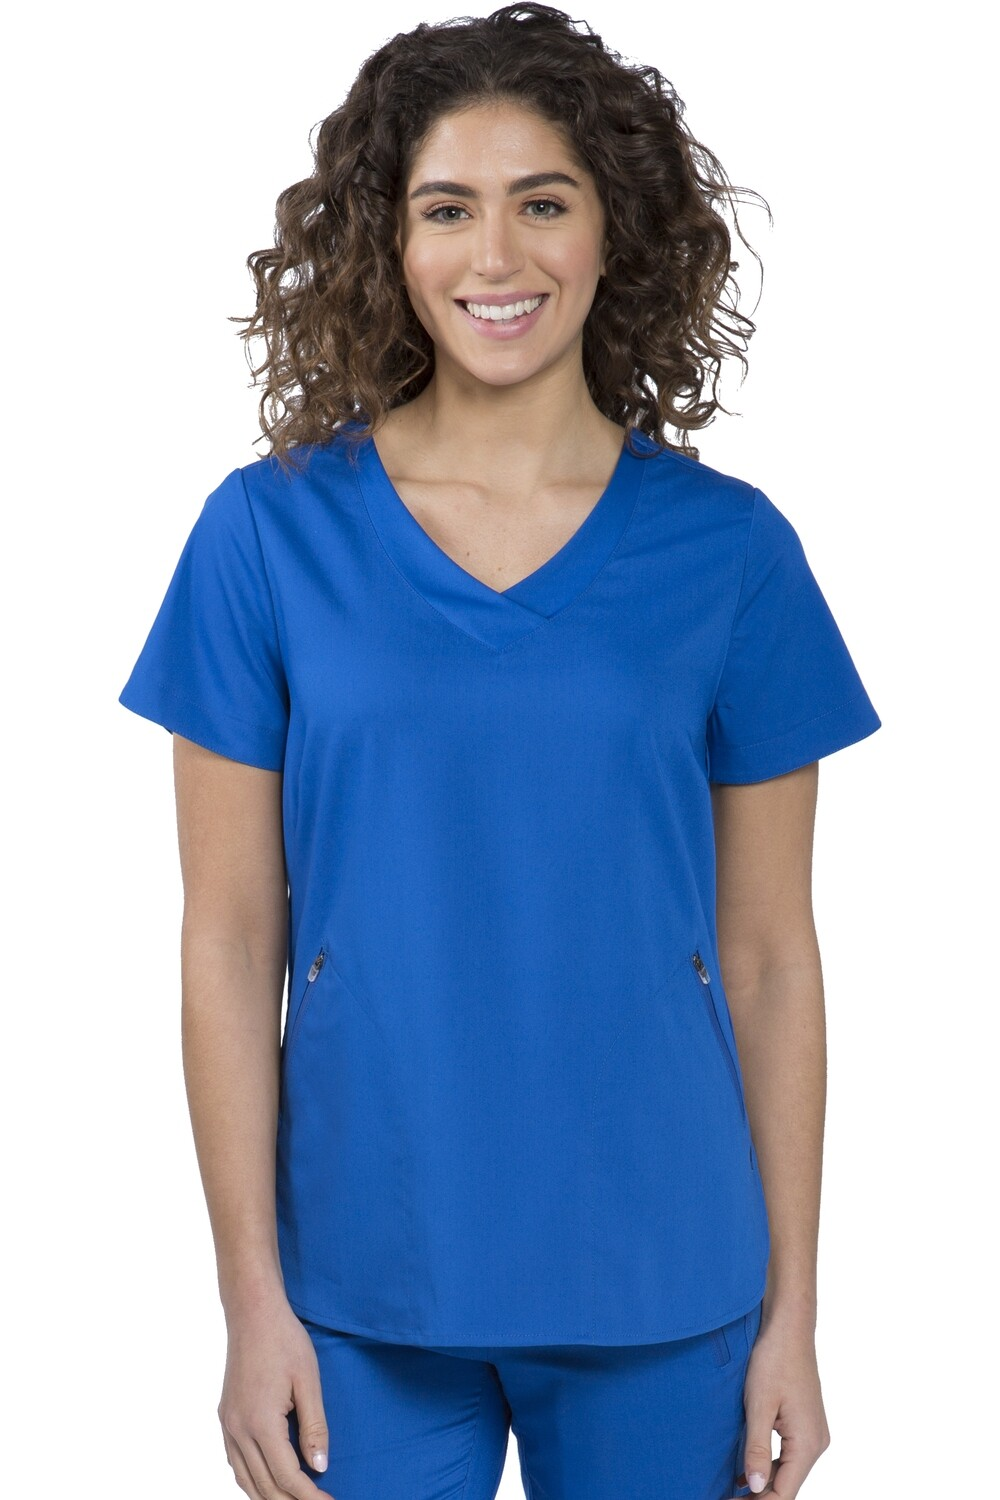 2335 JODI TOP ROYAL - PL 3XL